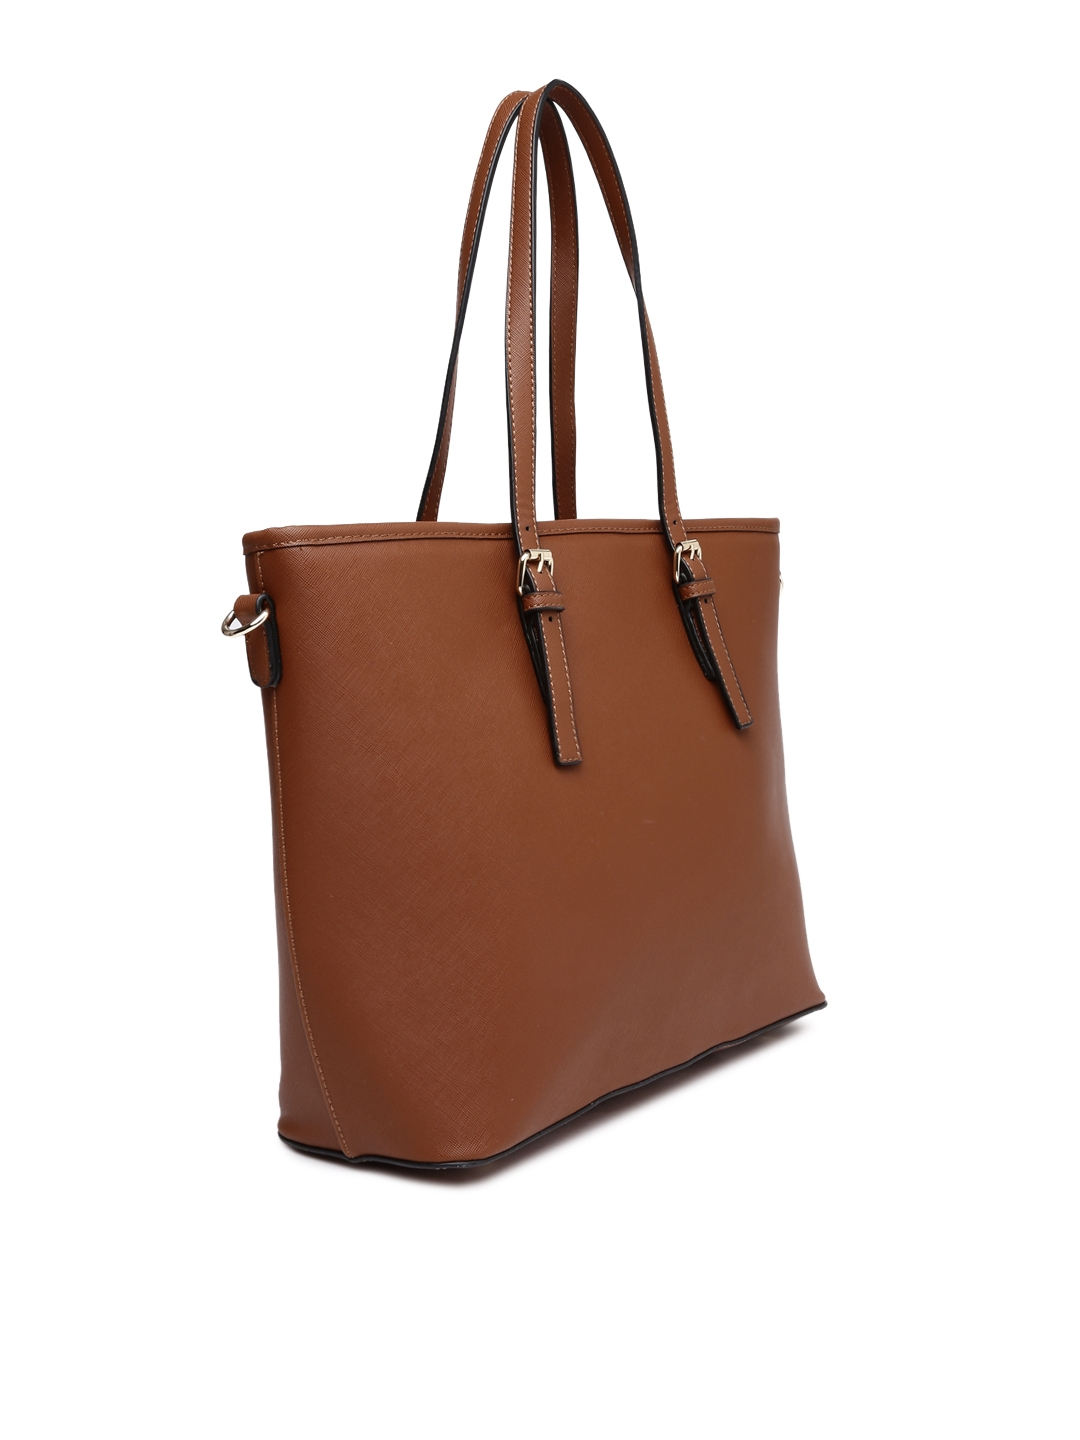 05a69abab2 Buy Mast & Harbour Brown Tote Bag - Handbags for Women 1629740   Myntra